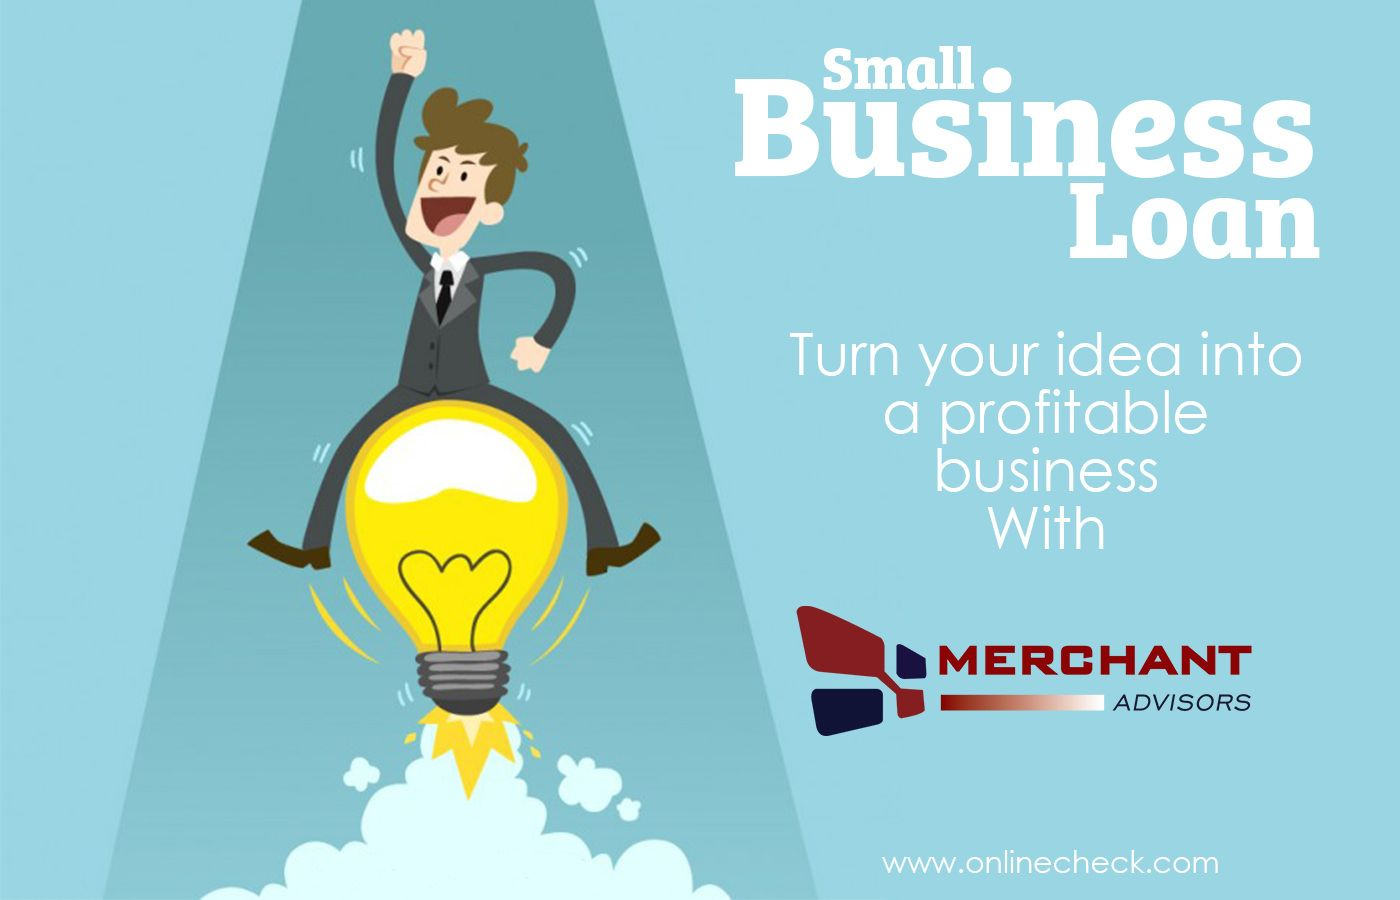 7 Unique Ways To Get Your Business Idea Funded Business Loans Profitable Business Small Business Resources